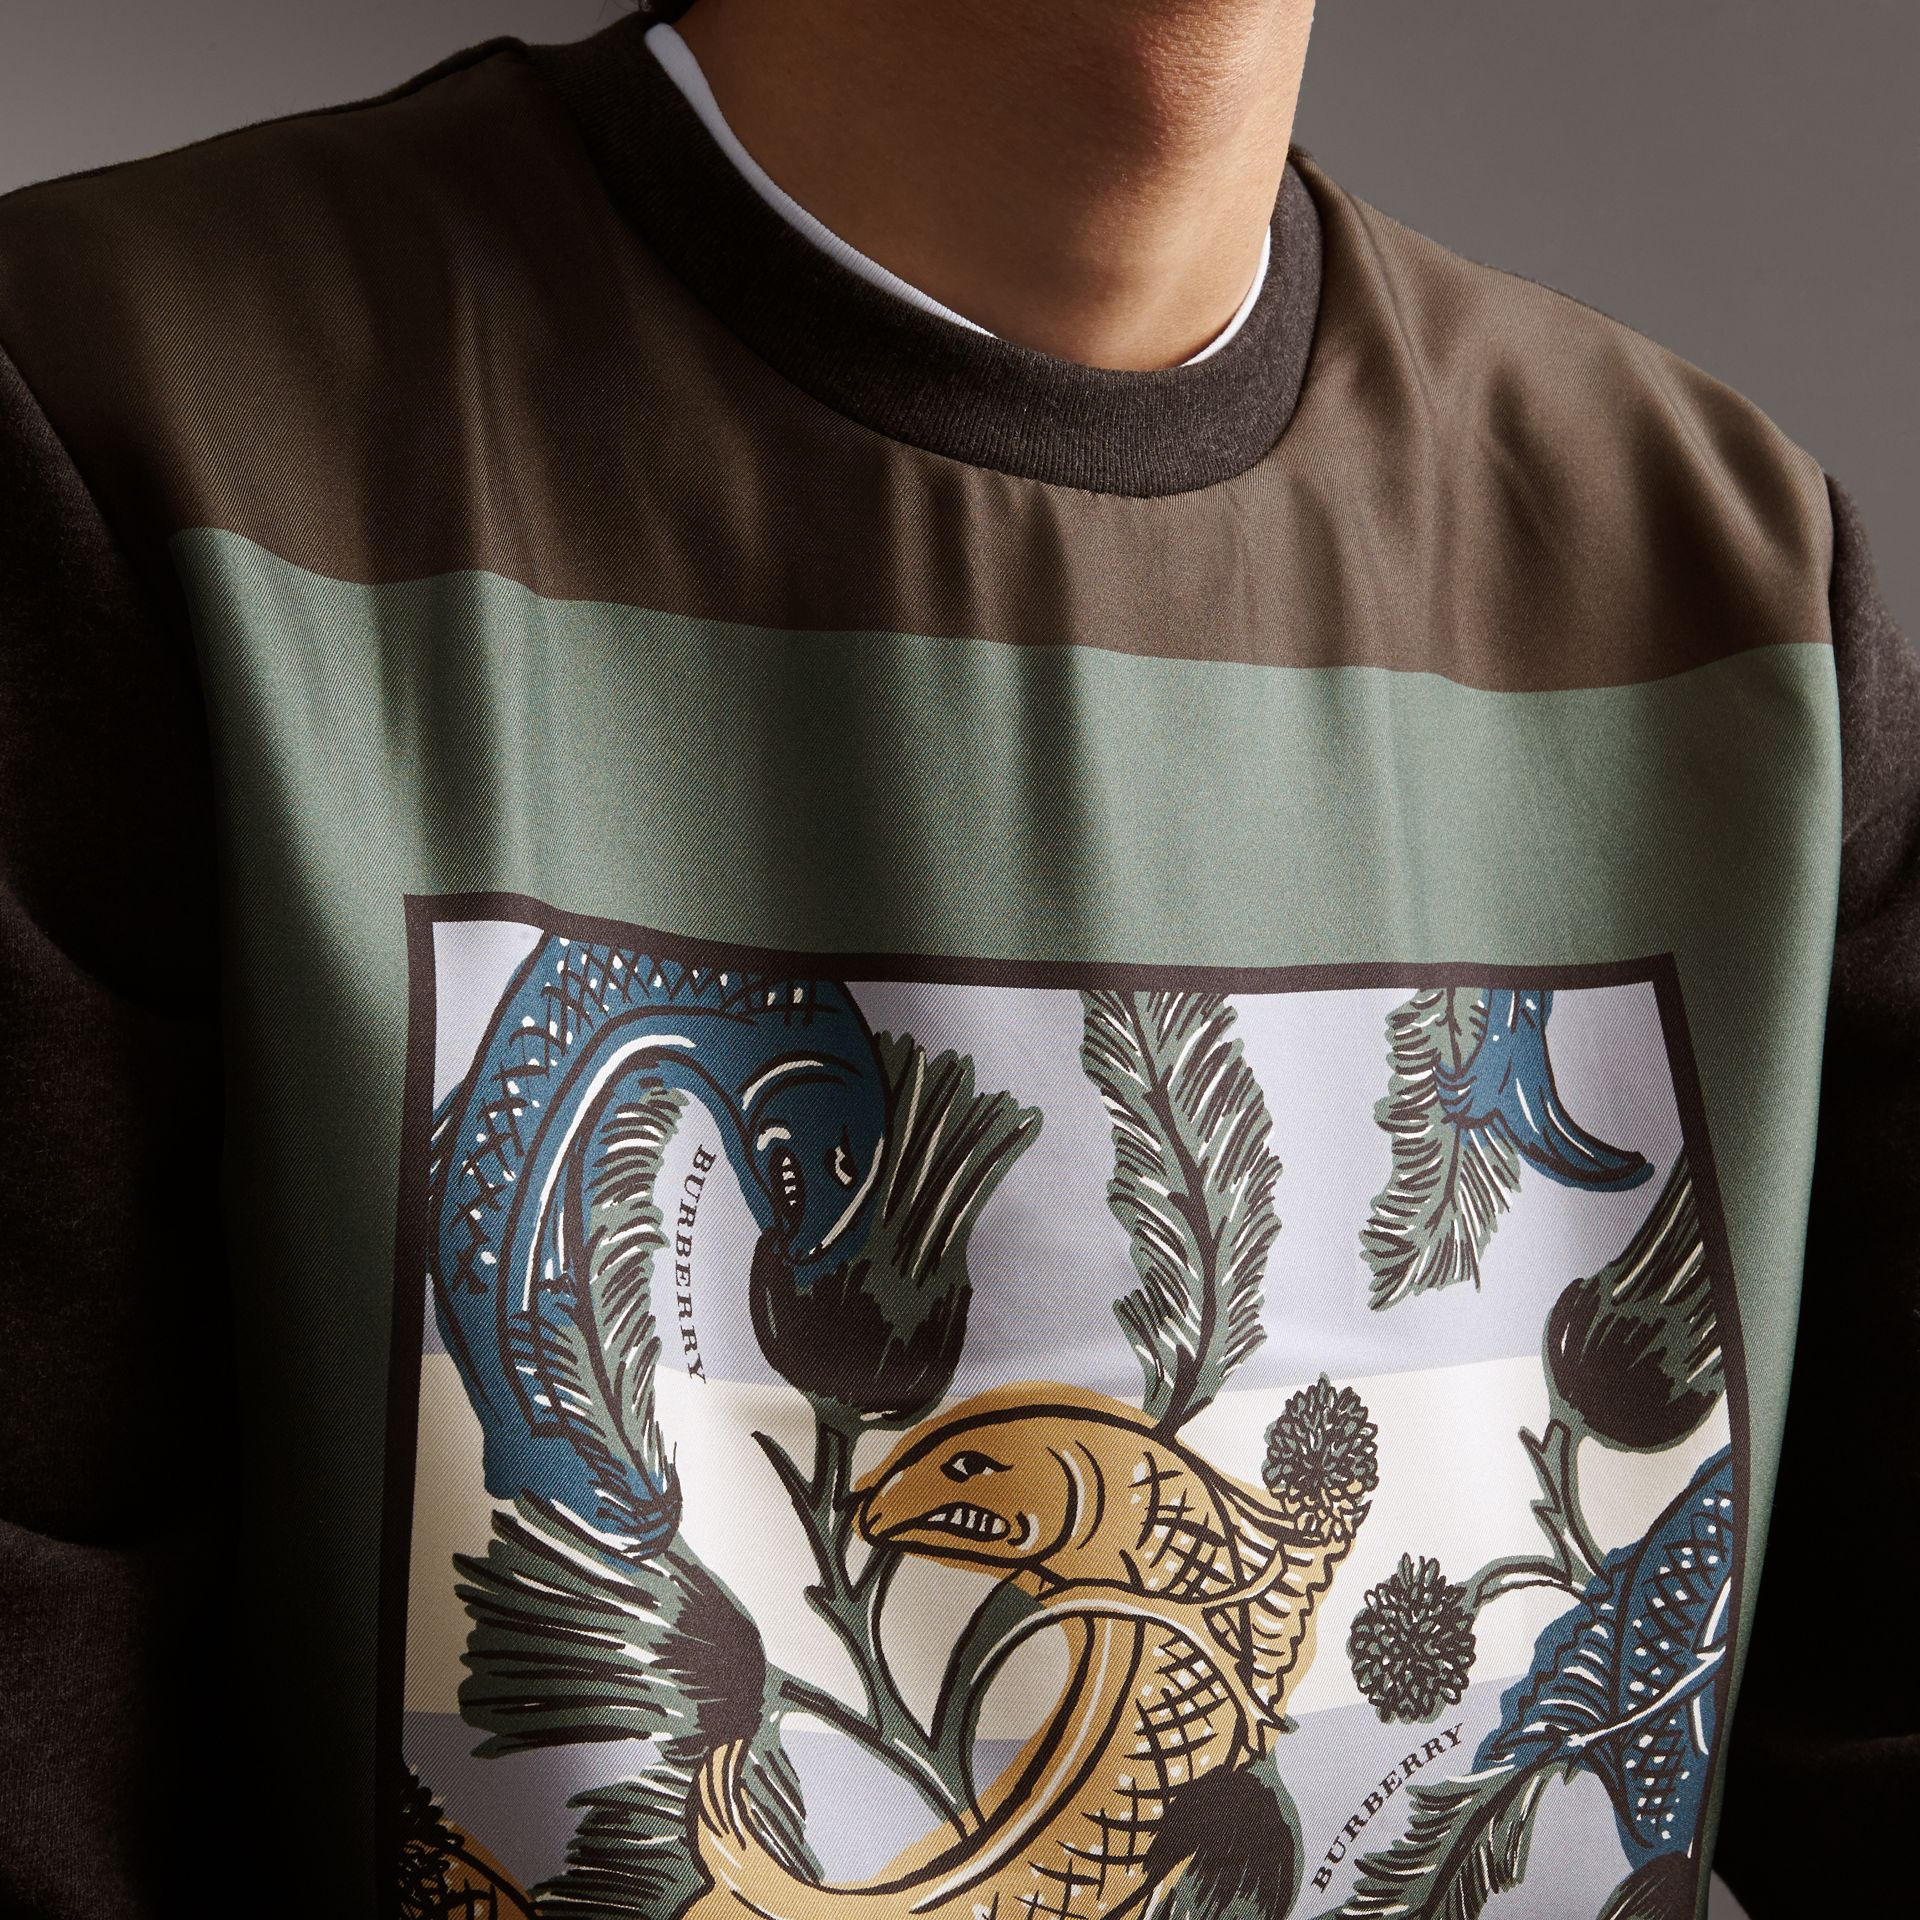 Unisex Beasts Print Silk Panel Cotton Sweatshirt in Charcoal Melange - Men | Burberry - gallery image 4